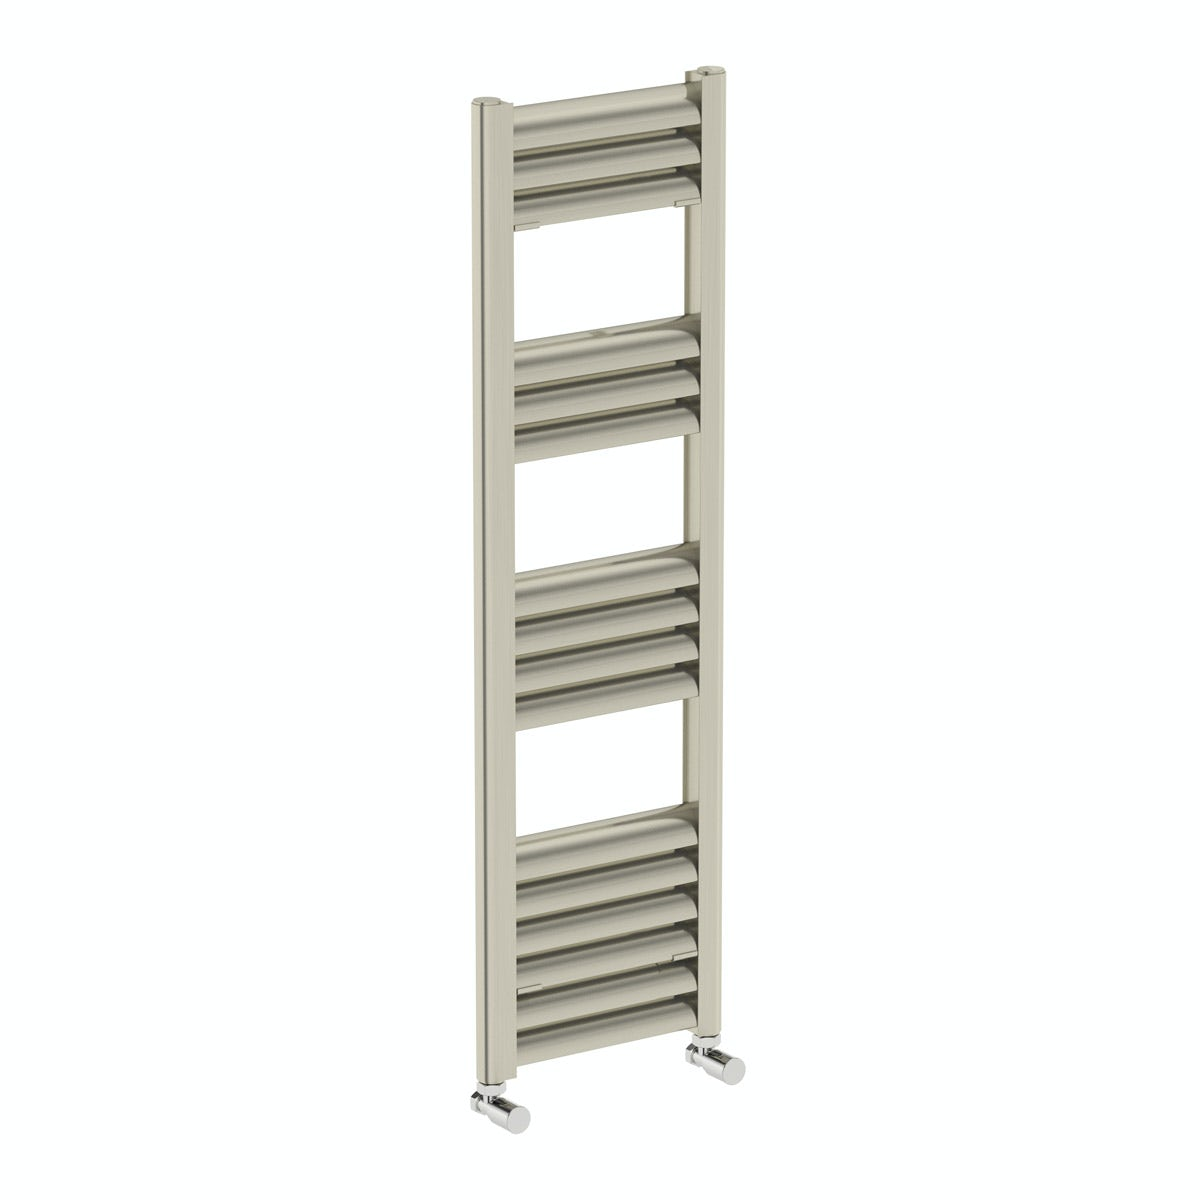 Mode Carter heated towel rail 1000 x 300